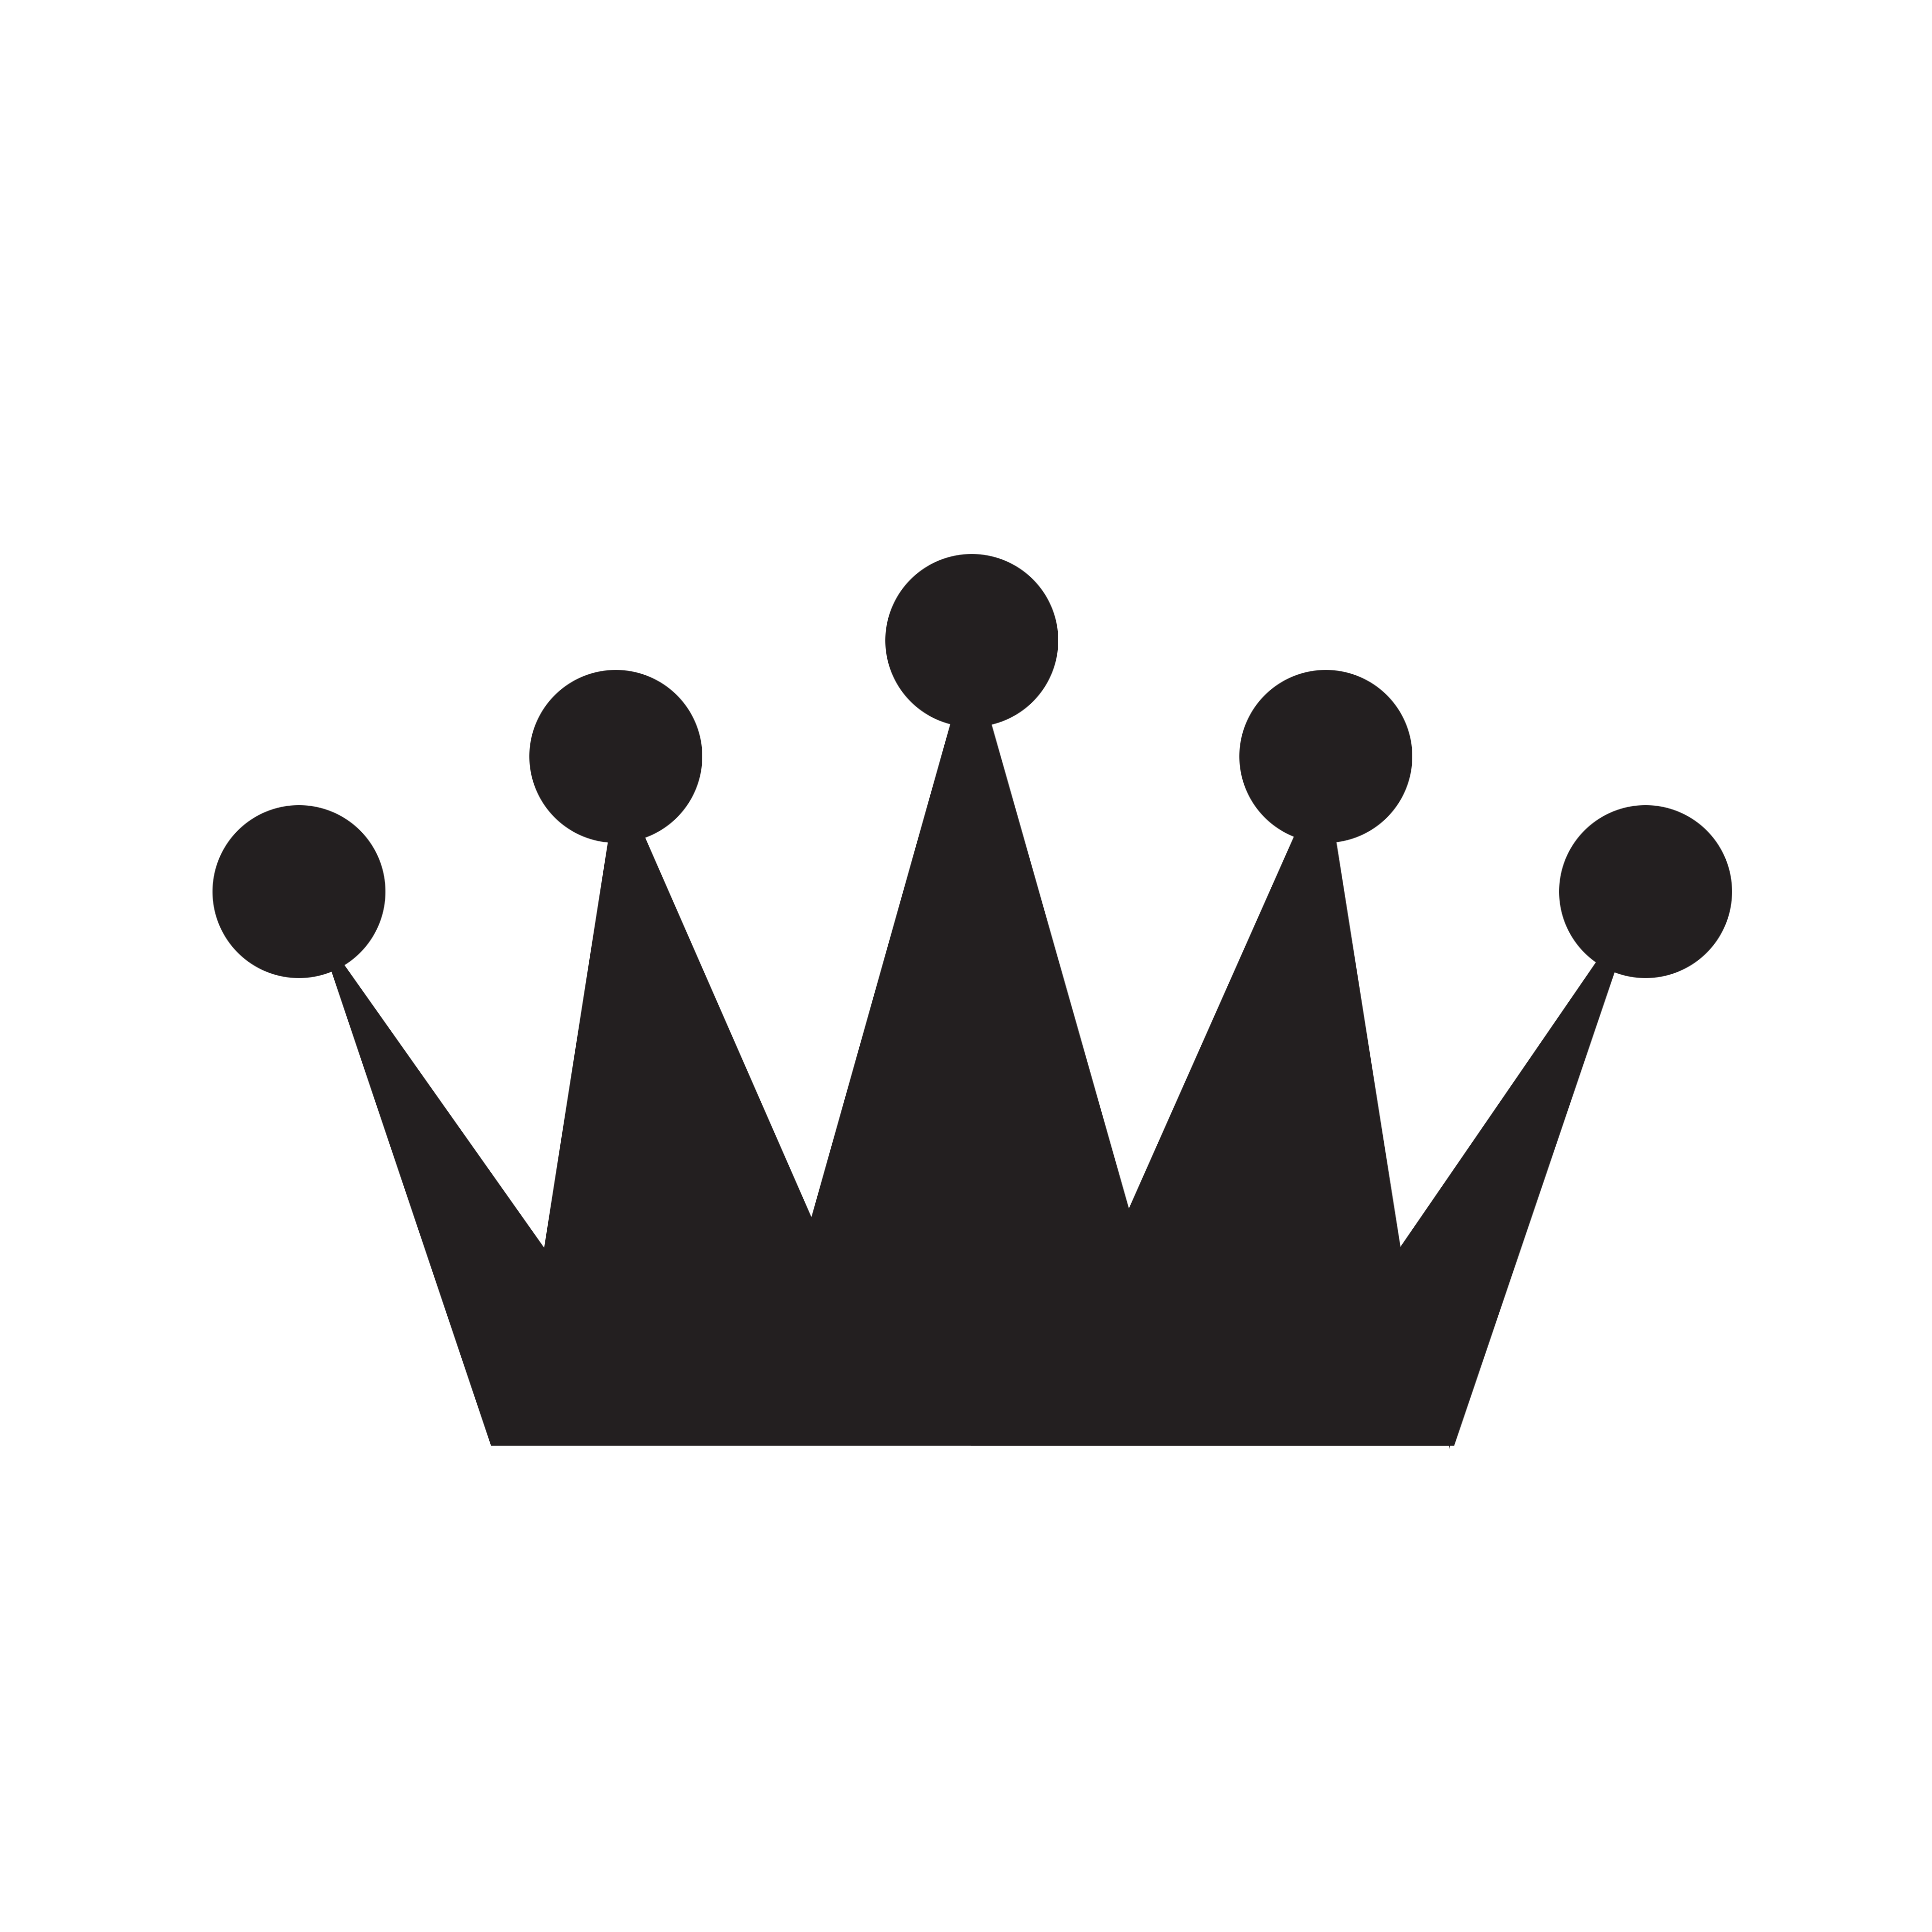 Crown png black. Images in collection page